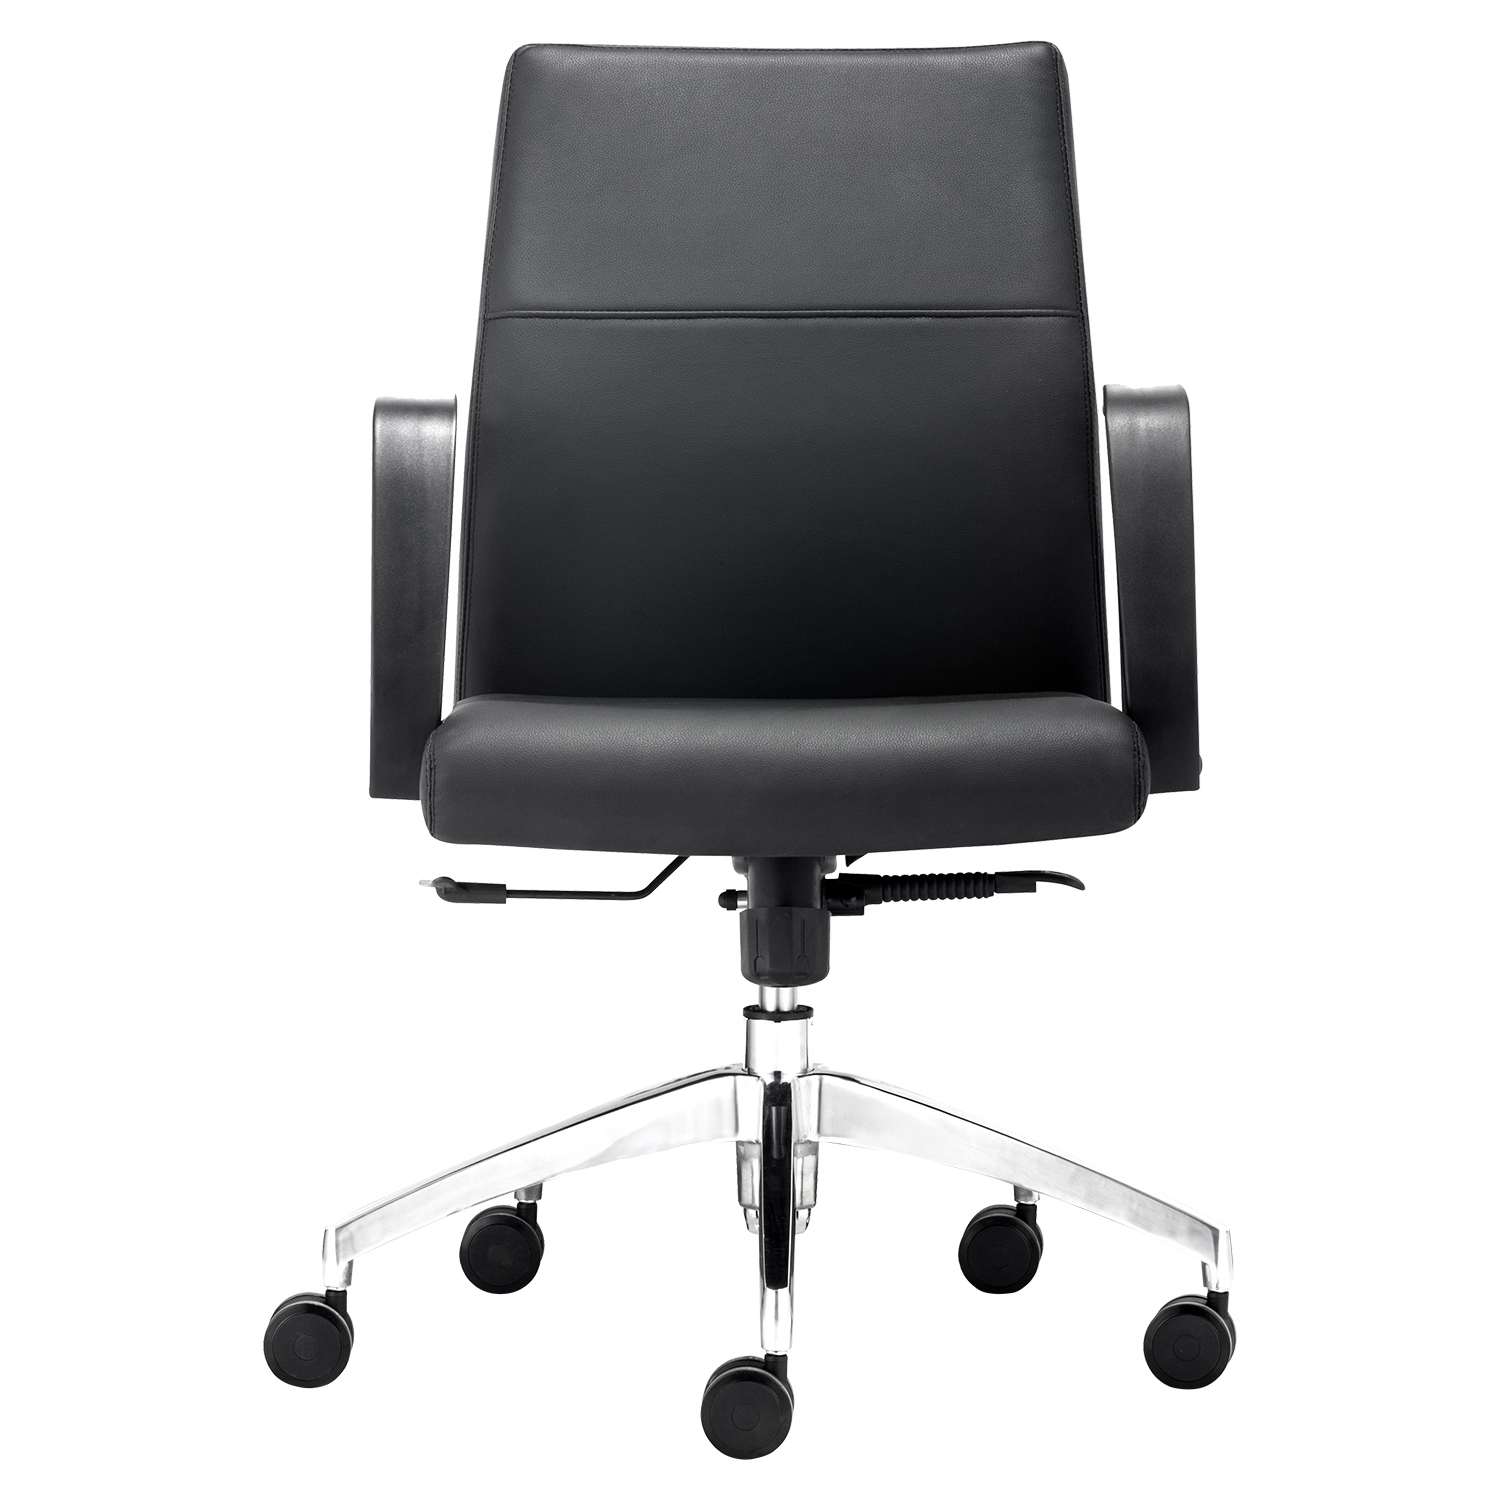 Conductor Low Back Office Chair - Casters, Black